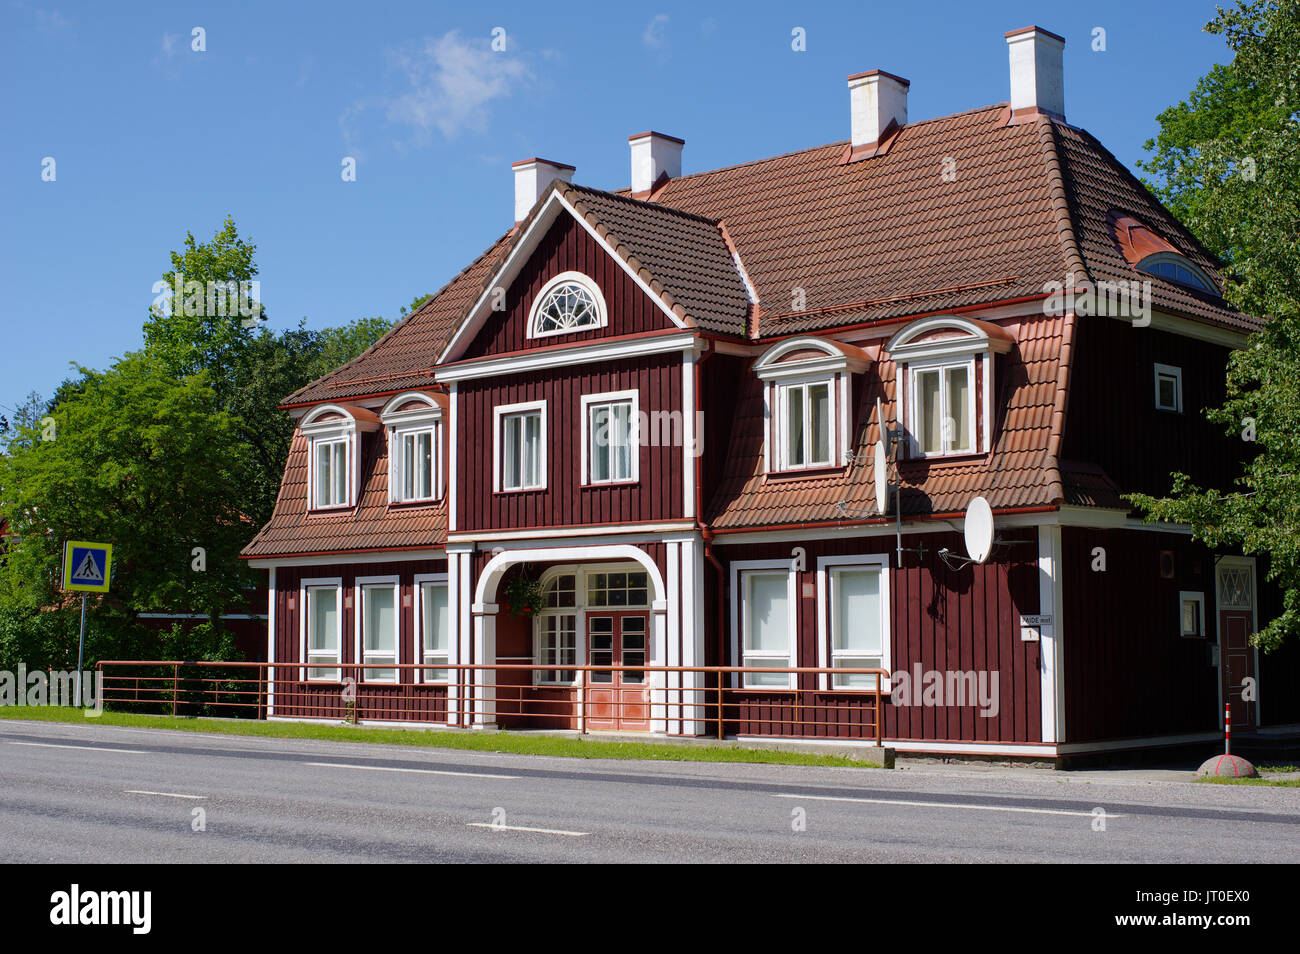 Old Sindi railway station. Estonia, Pärnu county 6th August 2017 Stock Photo